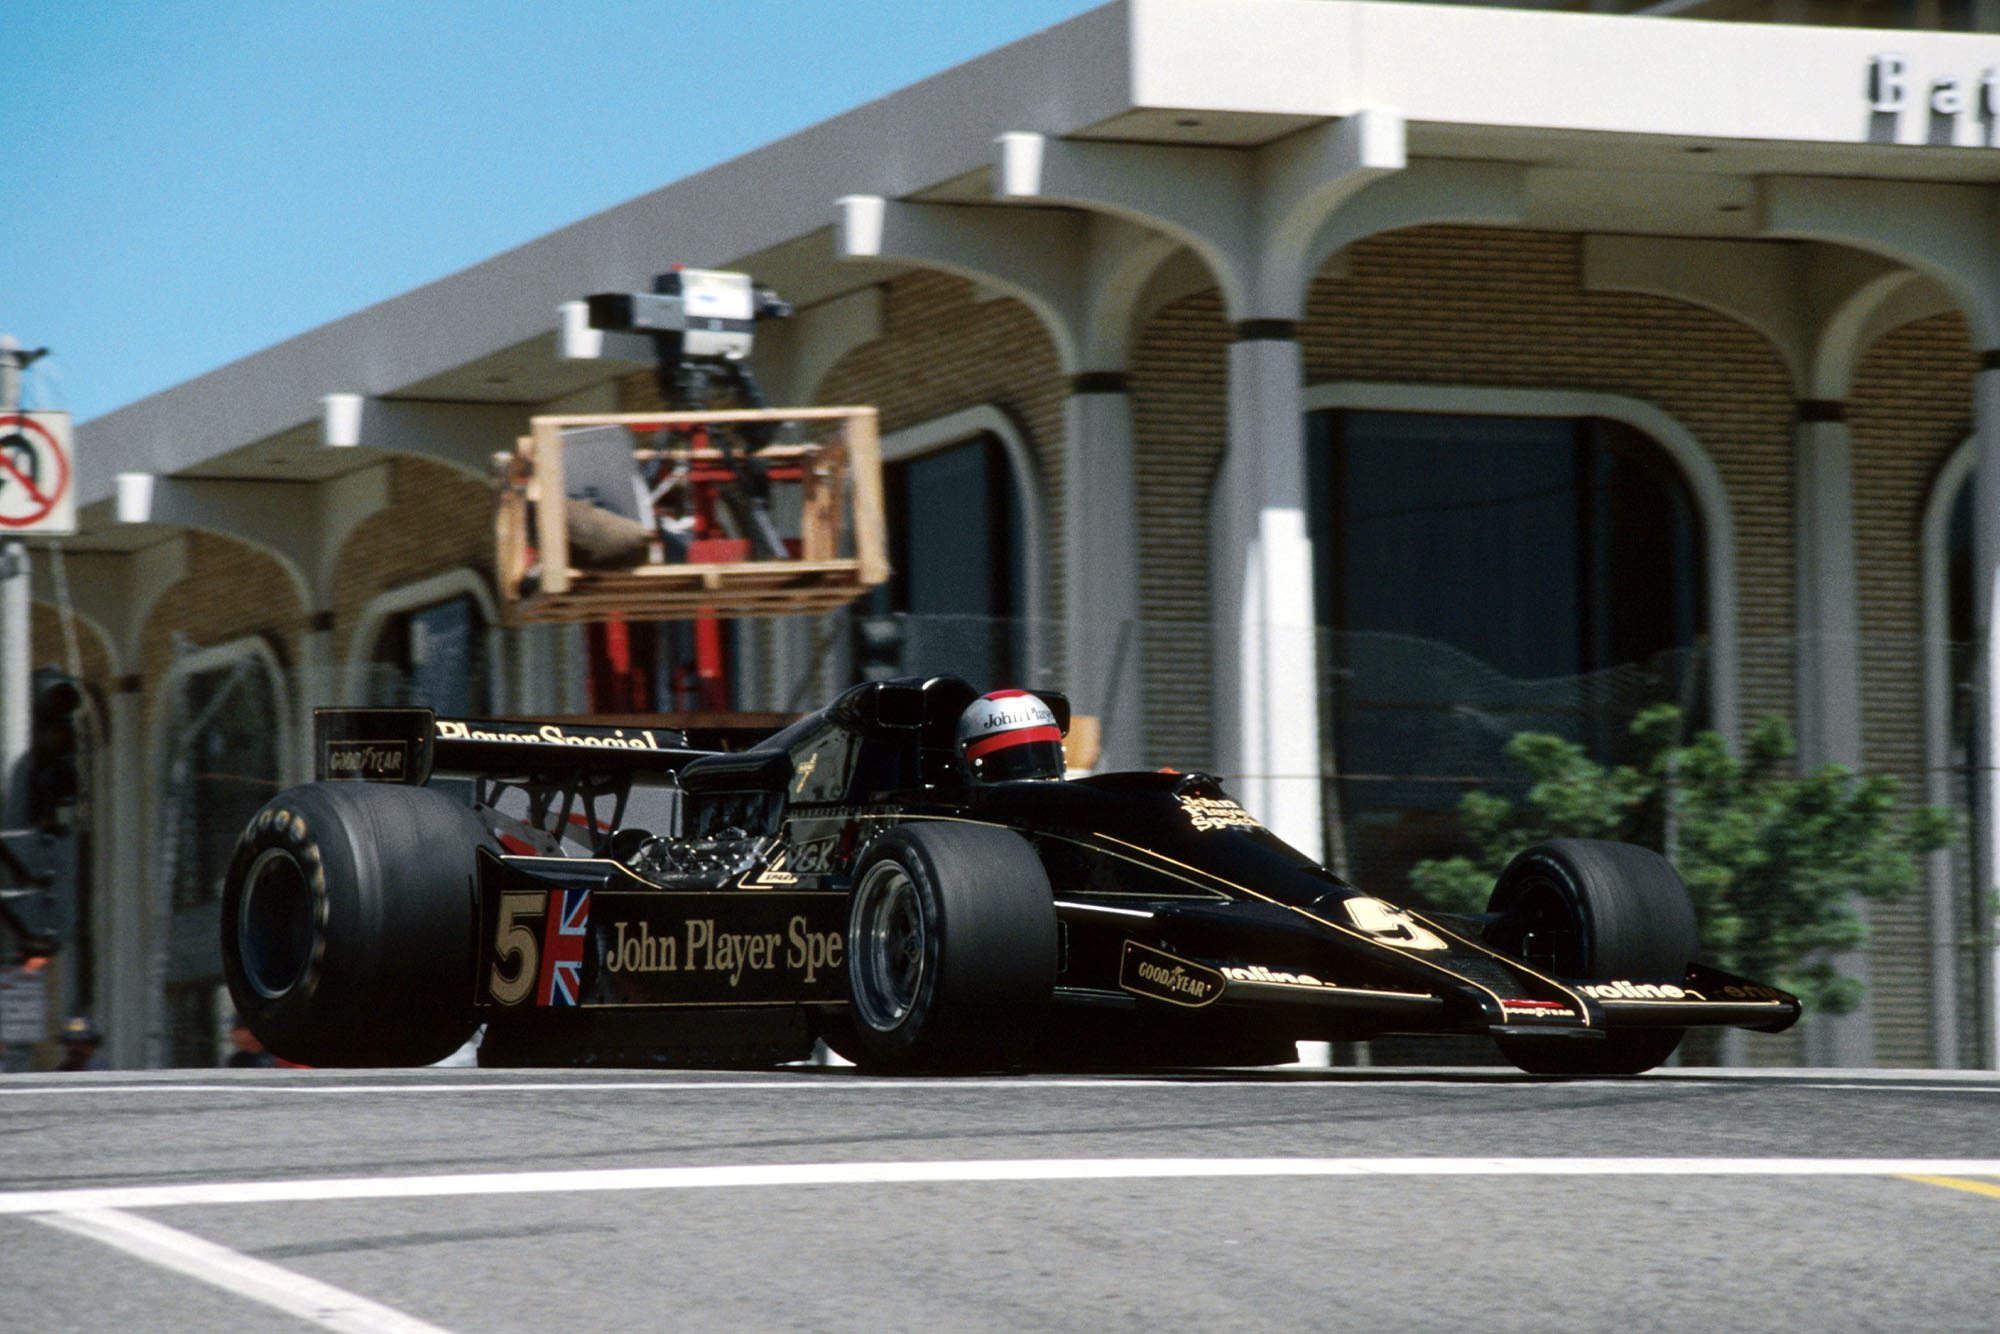 Mario Andretti (Lotus) head down the head at the 1978 United States Grand Prix West, Long Beach.